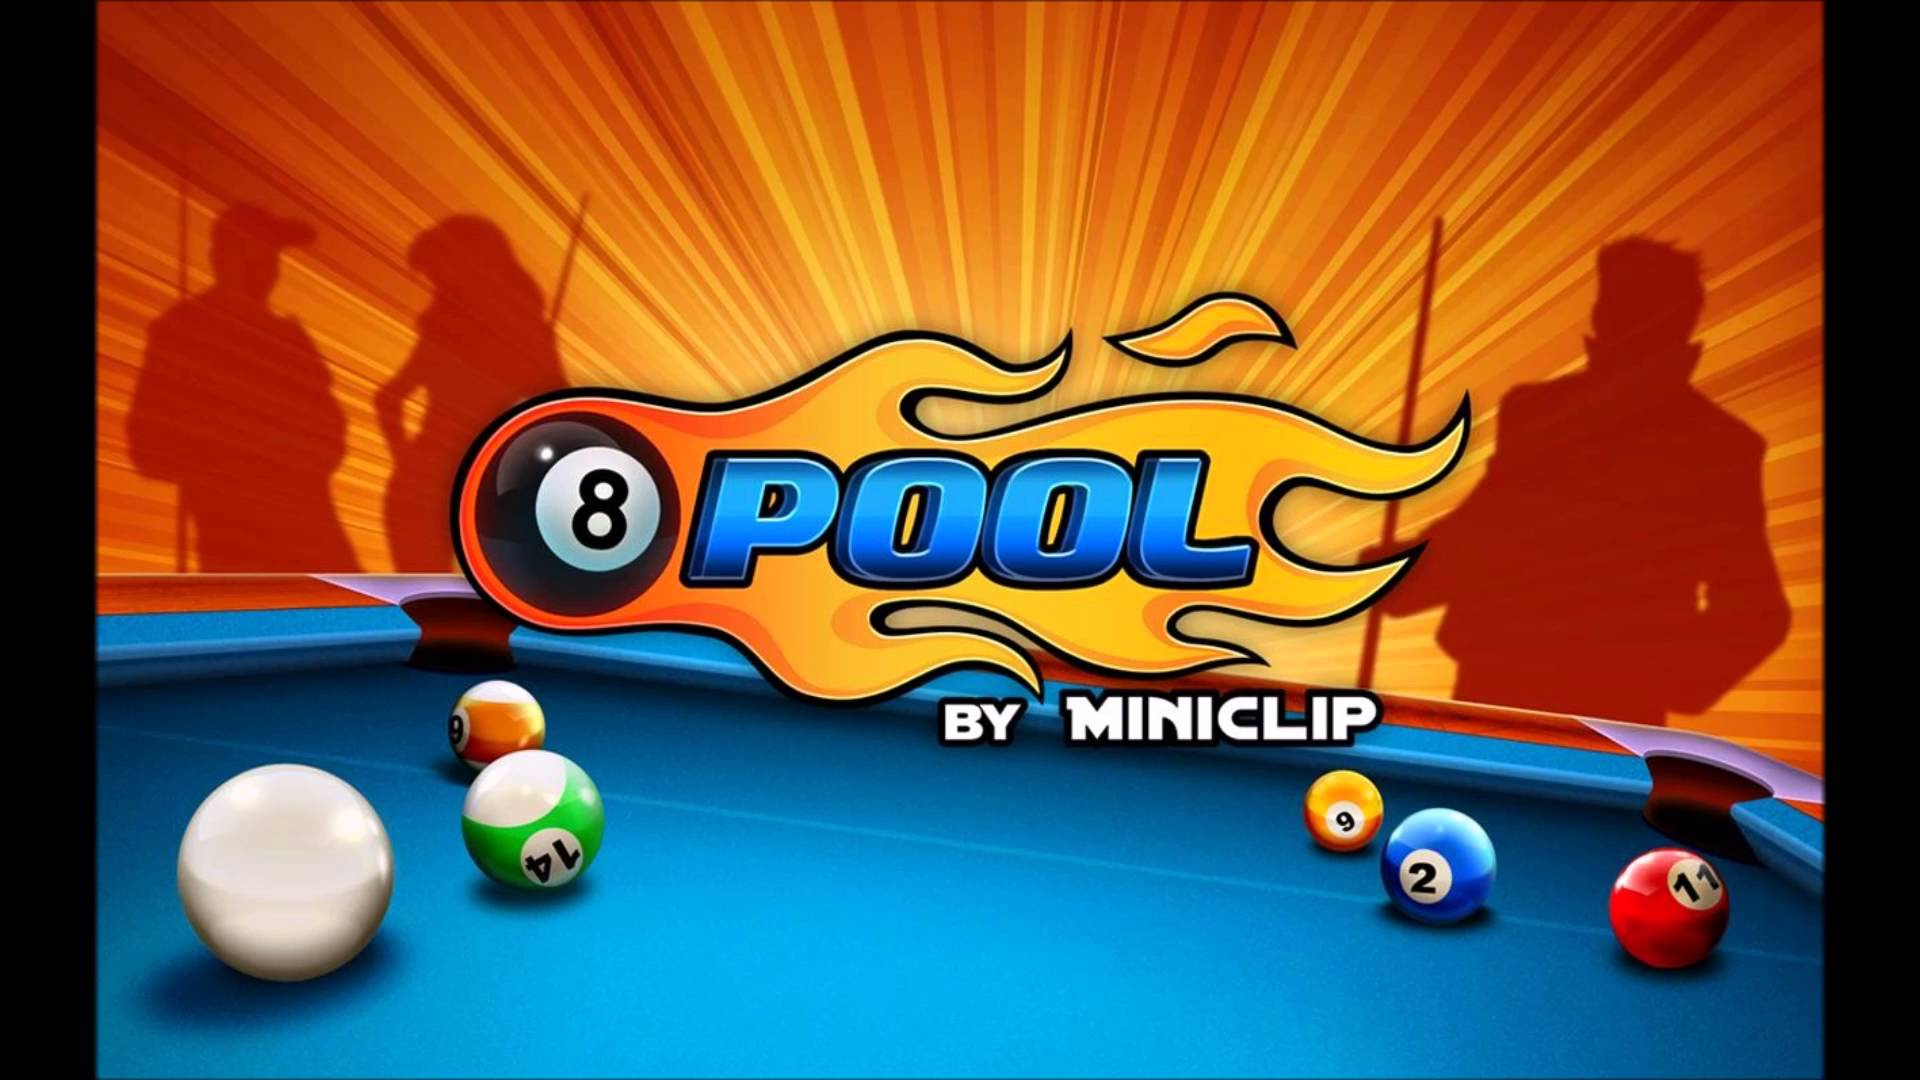 #1 Number Pool Game On Android!